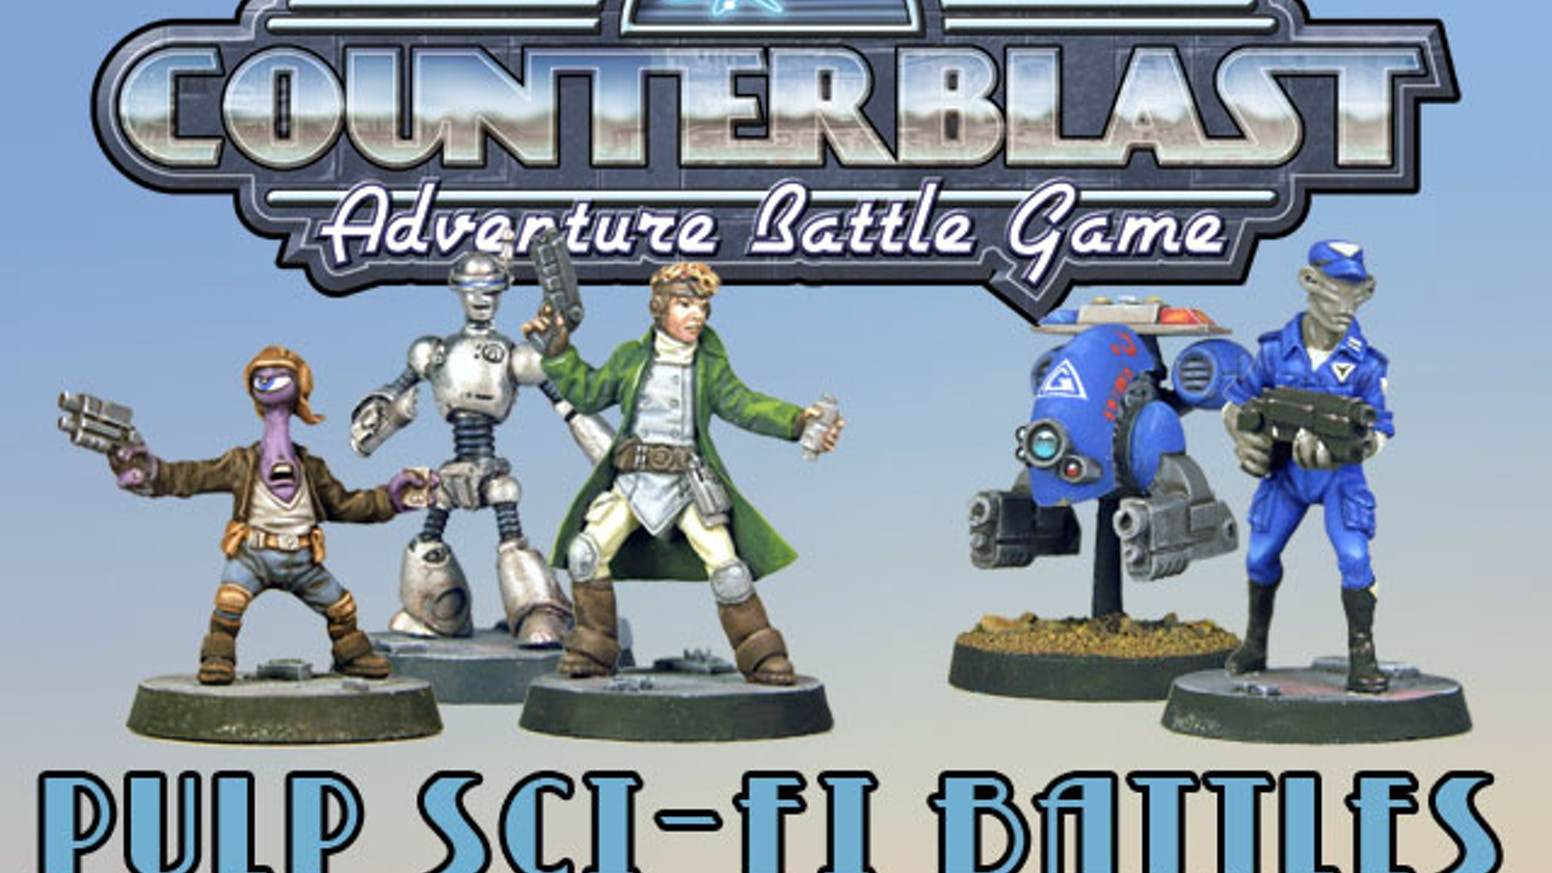 We are pleased to announce COUNTERBLAST, a pulp-inspired science fiction tabletop skirmish battle game for miniatures.